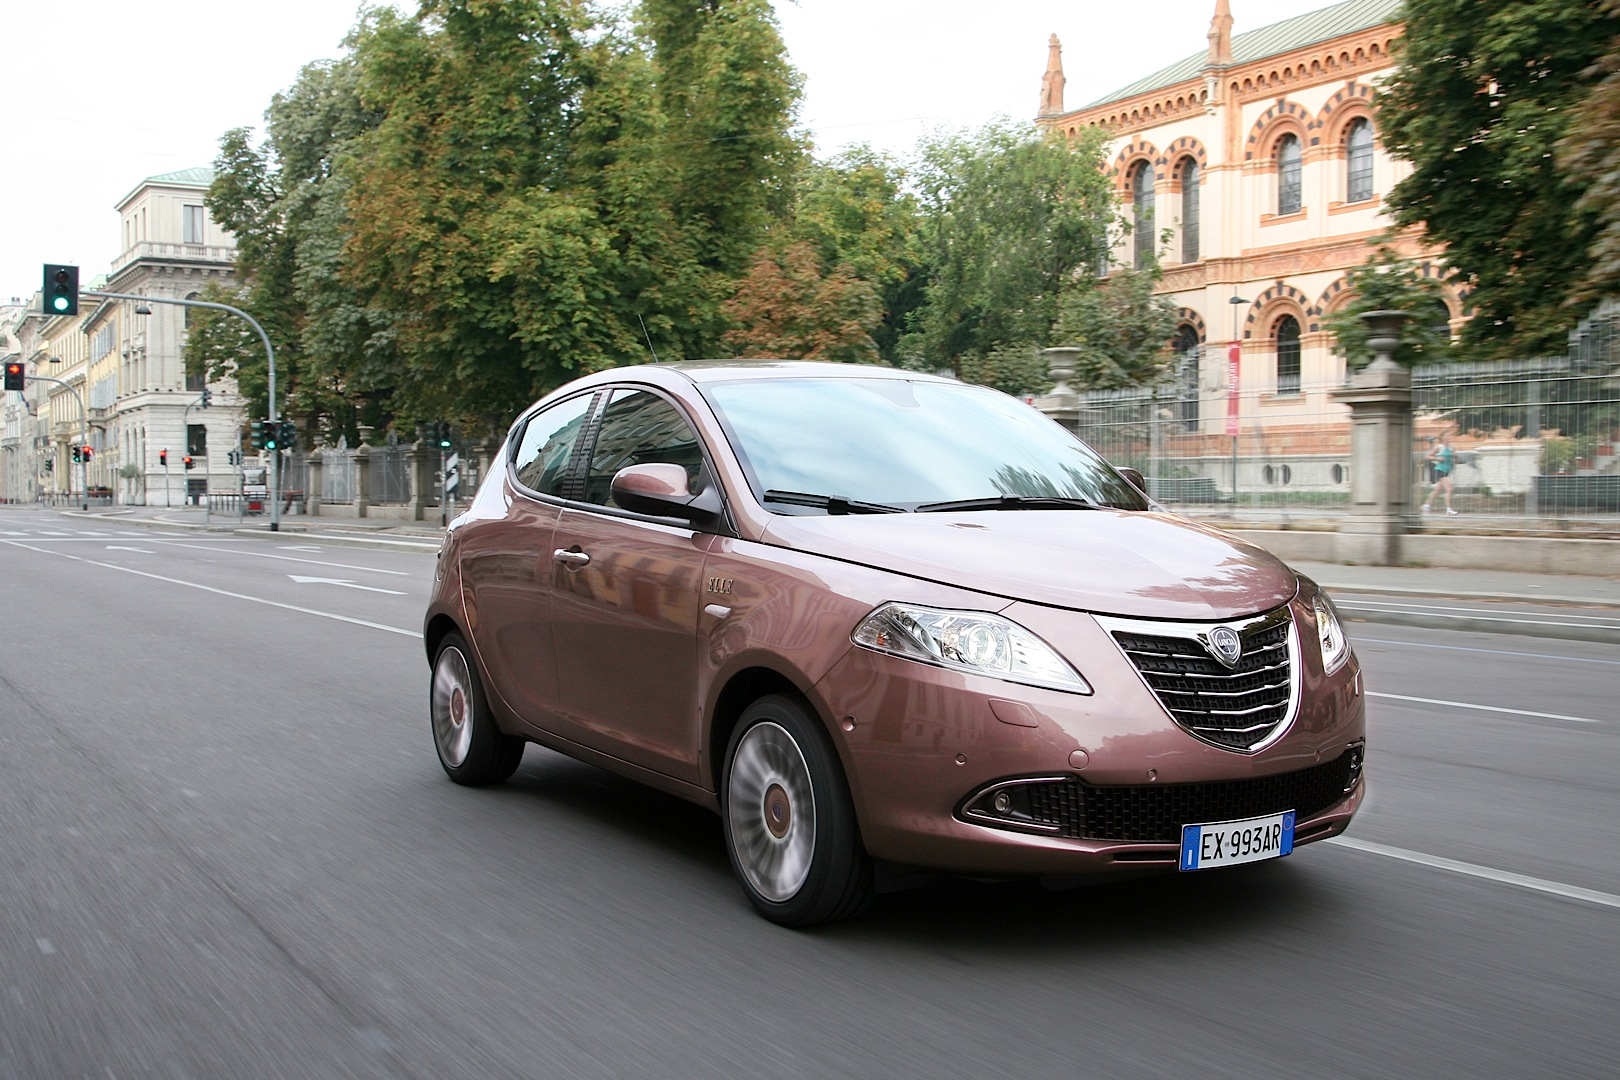 check out the new lancia ypsilon elle before they kill it